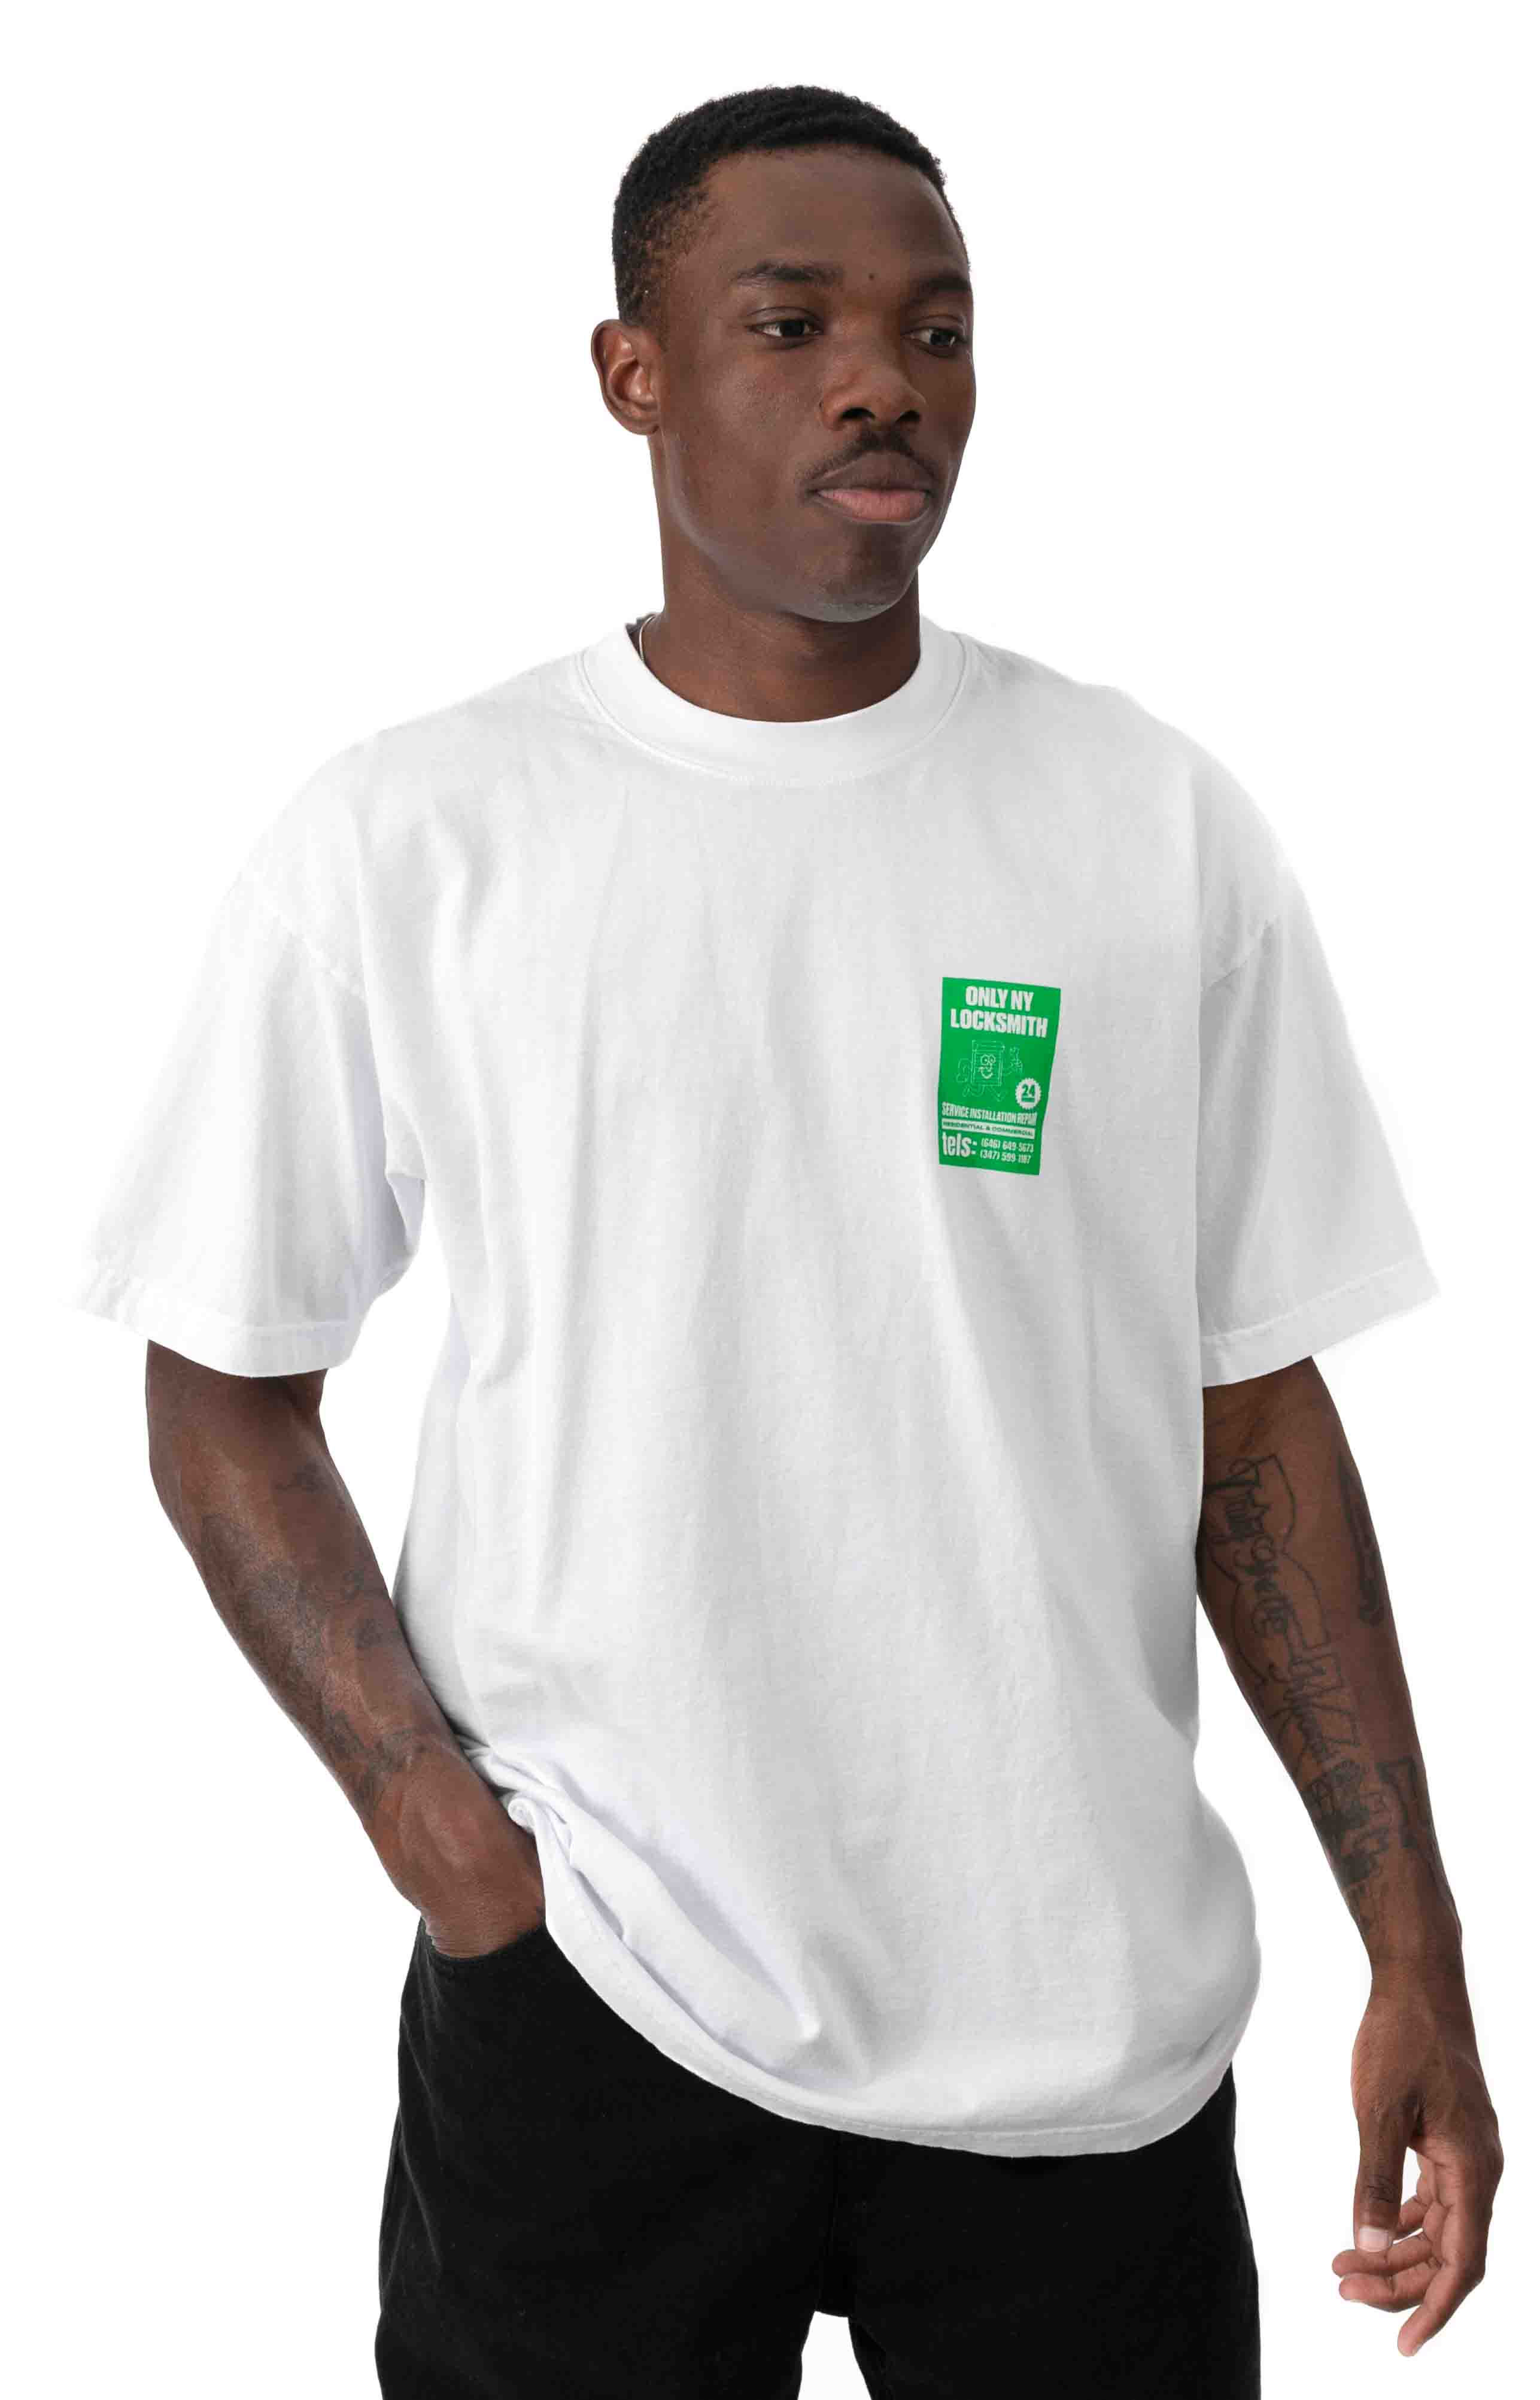 Locksmith T-Shirt - White